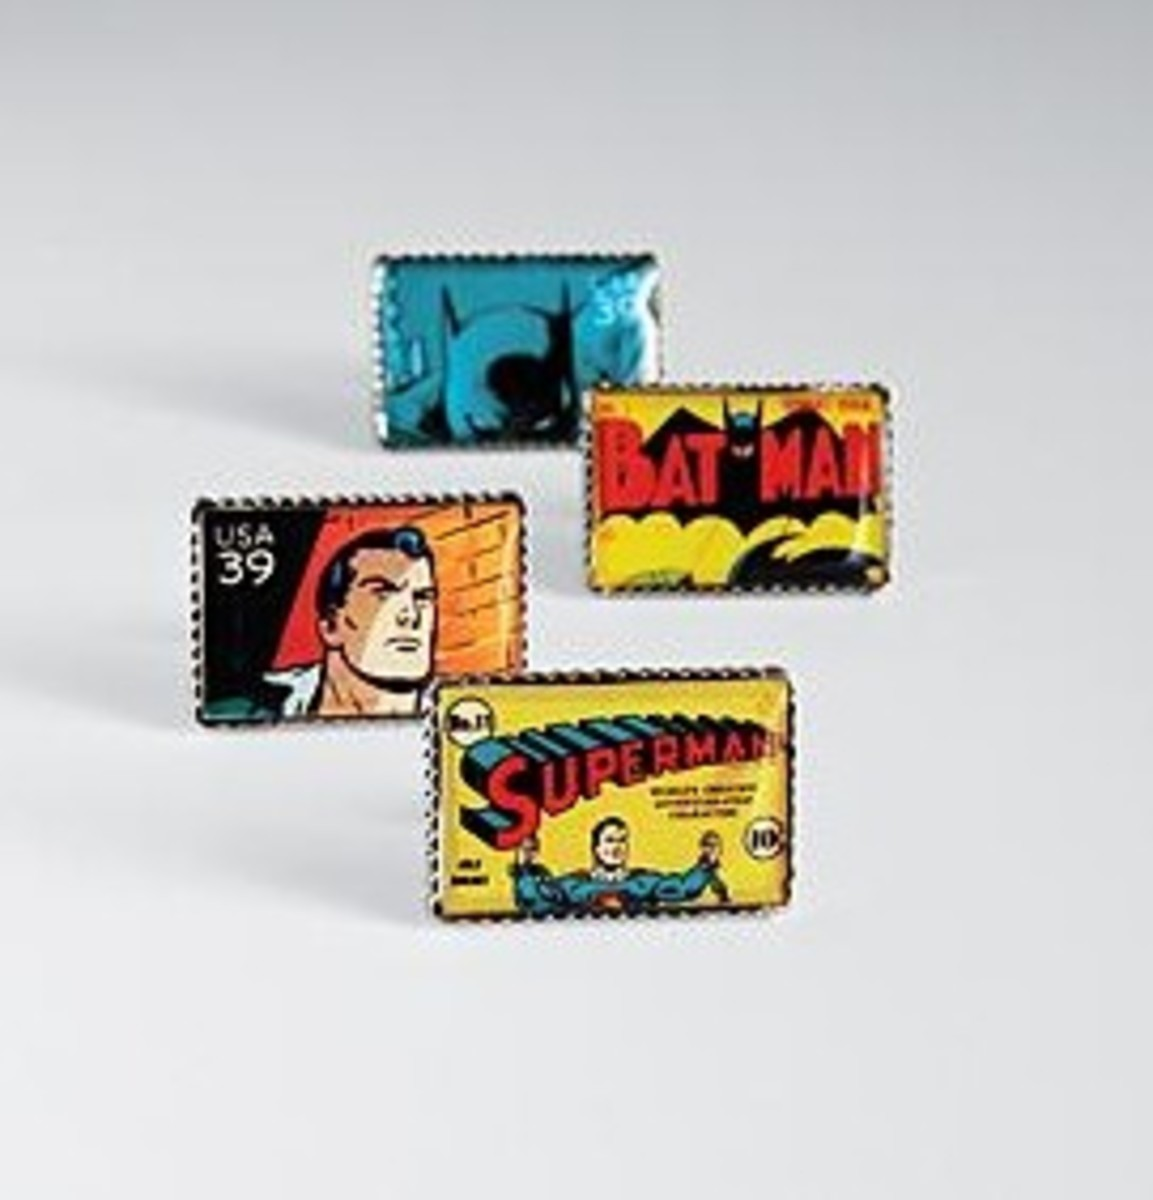 Superhero Cufflinks. Yes!